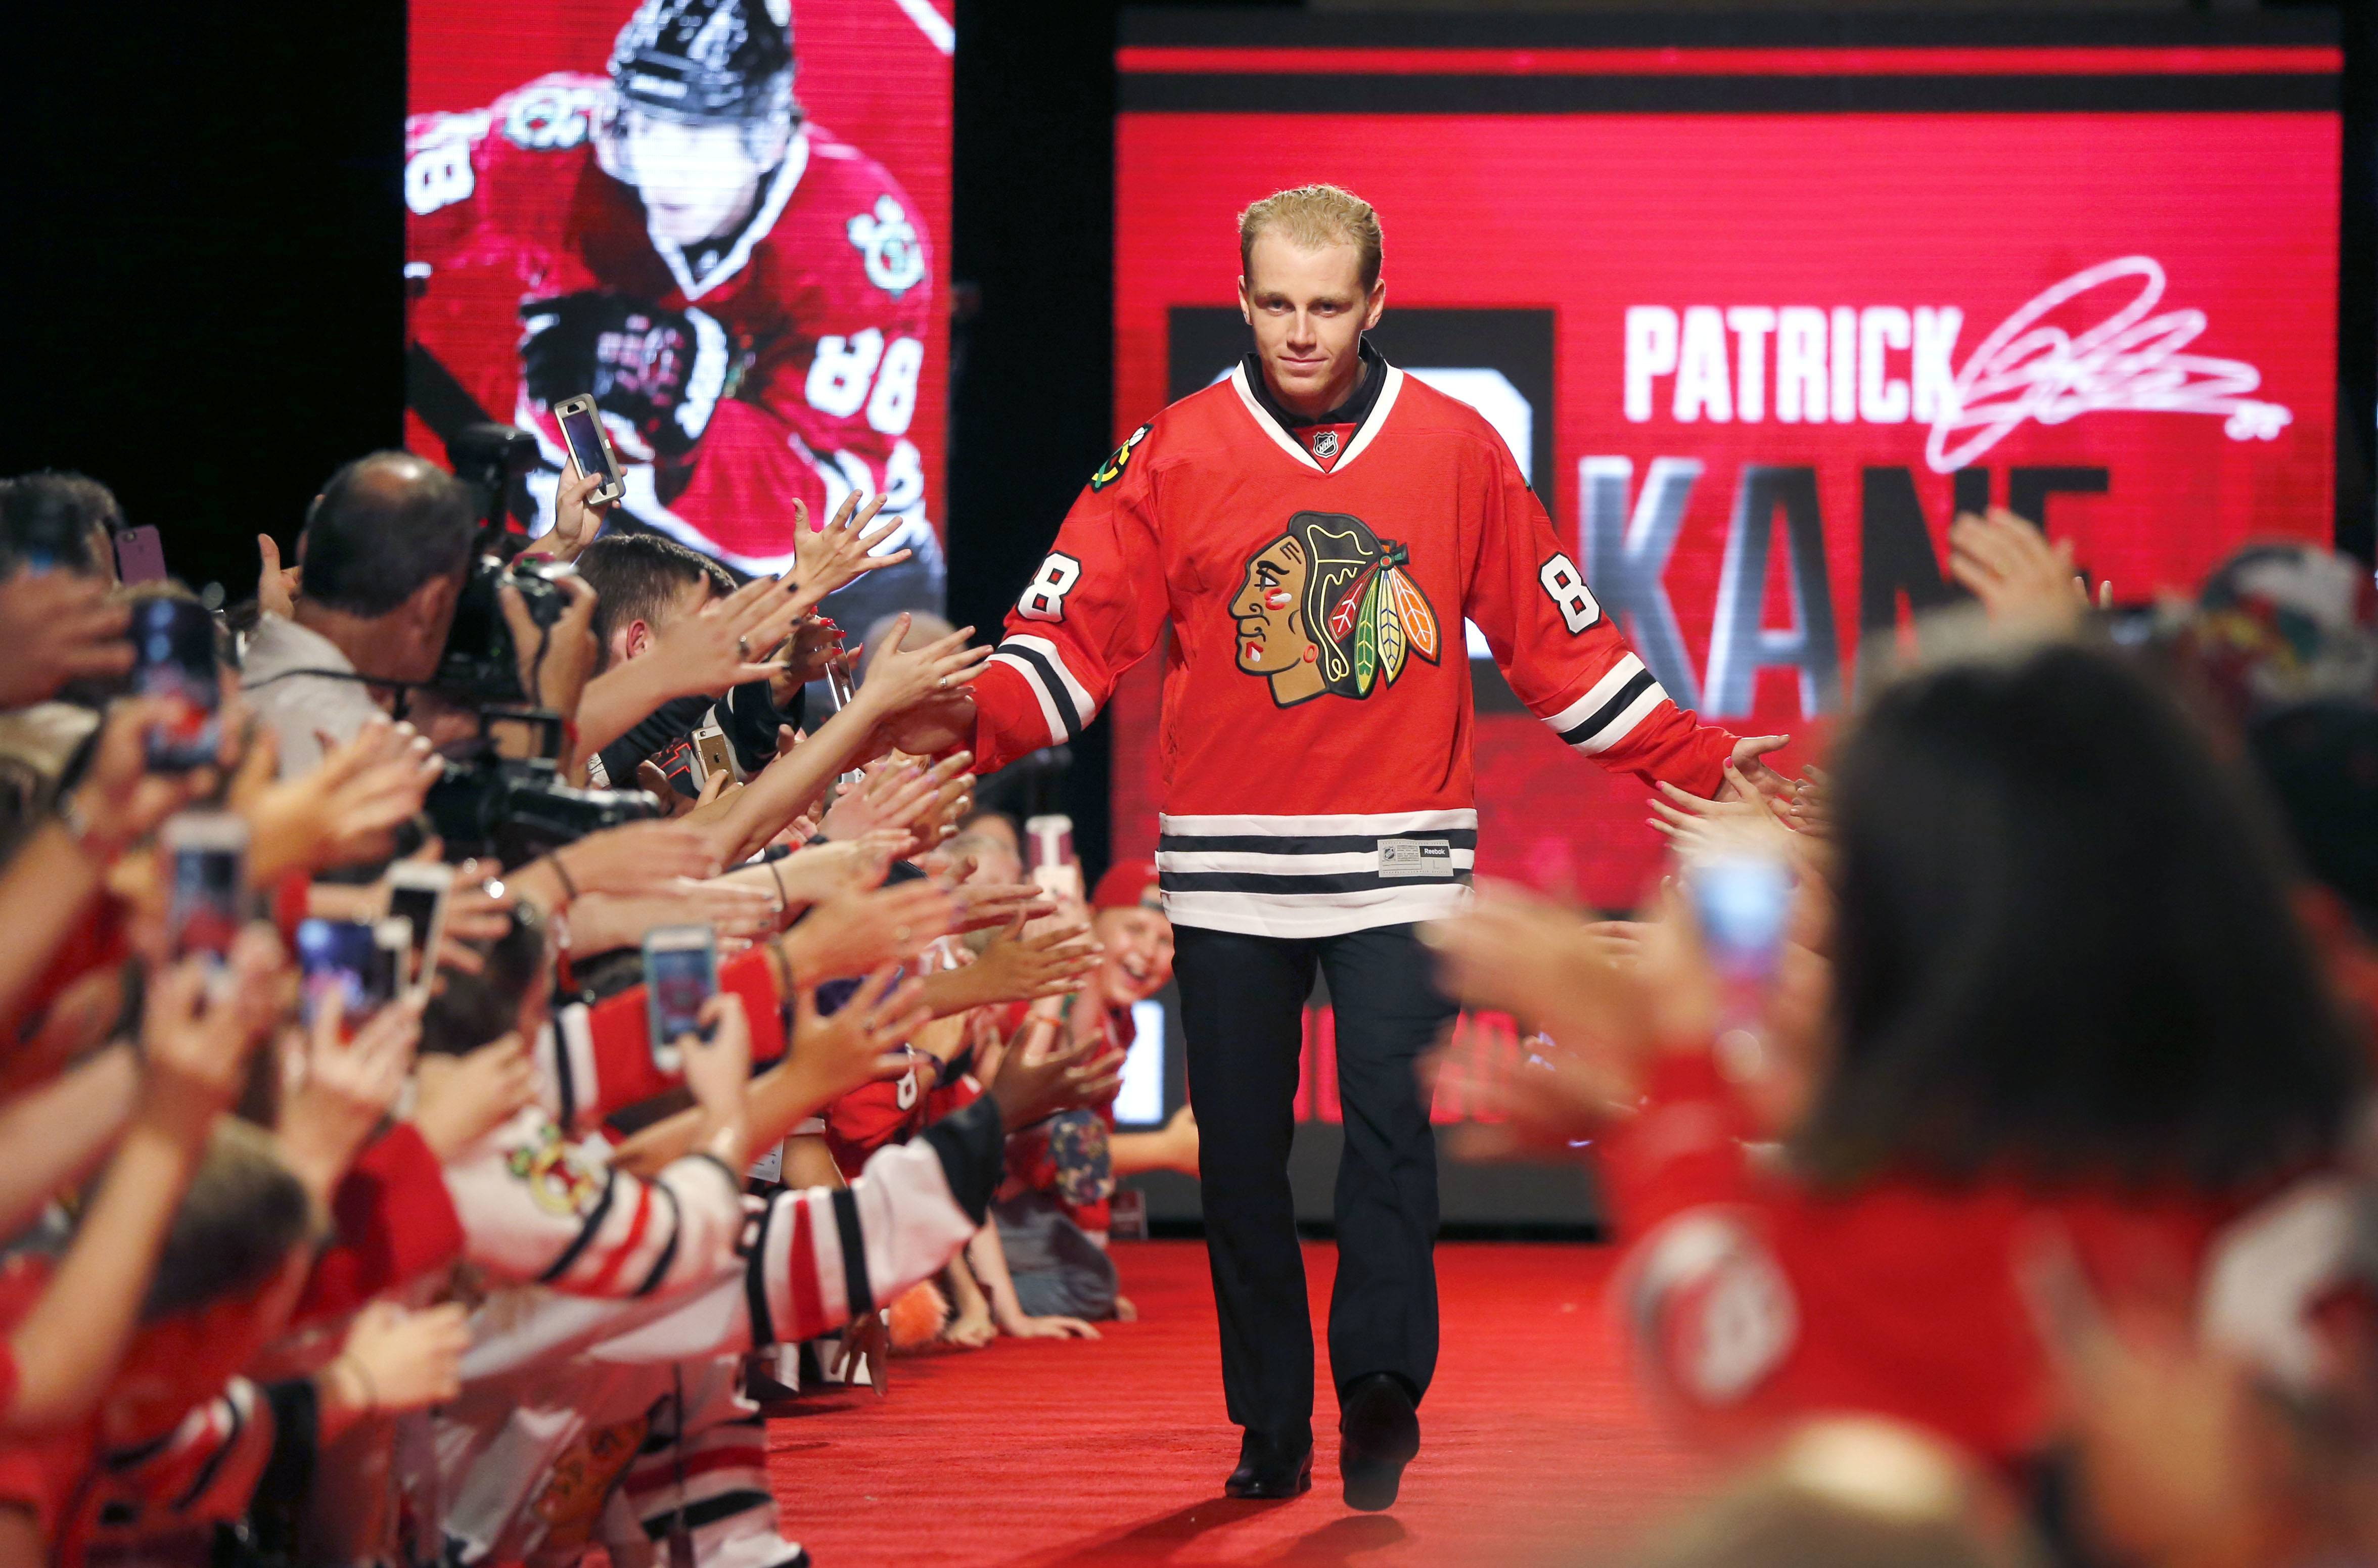 Chicago Blackhawks' Patrick Kane is introduced to the fans during the Blackhawks' NHL Convention Friday, July 15, 2016, in Chicago.